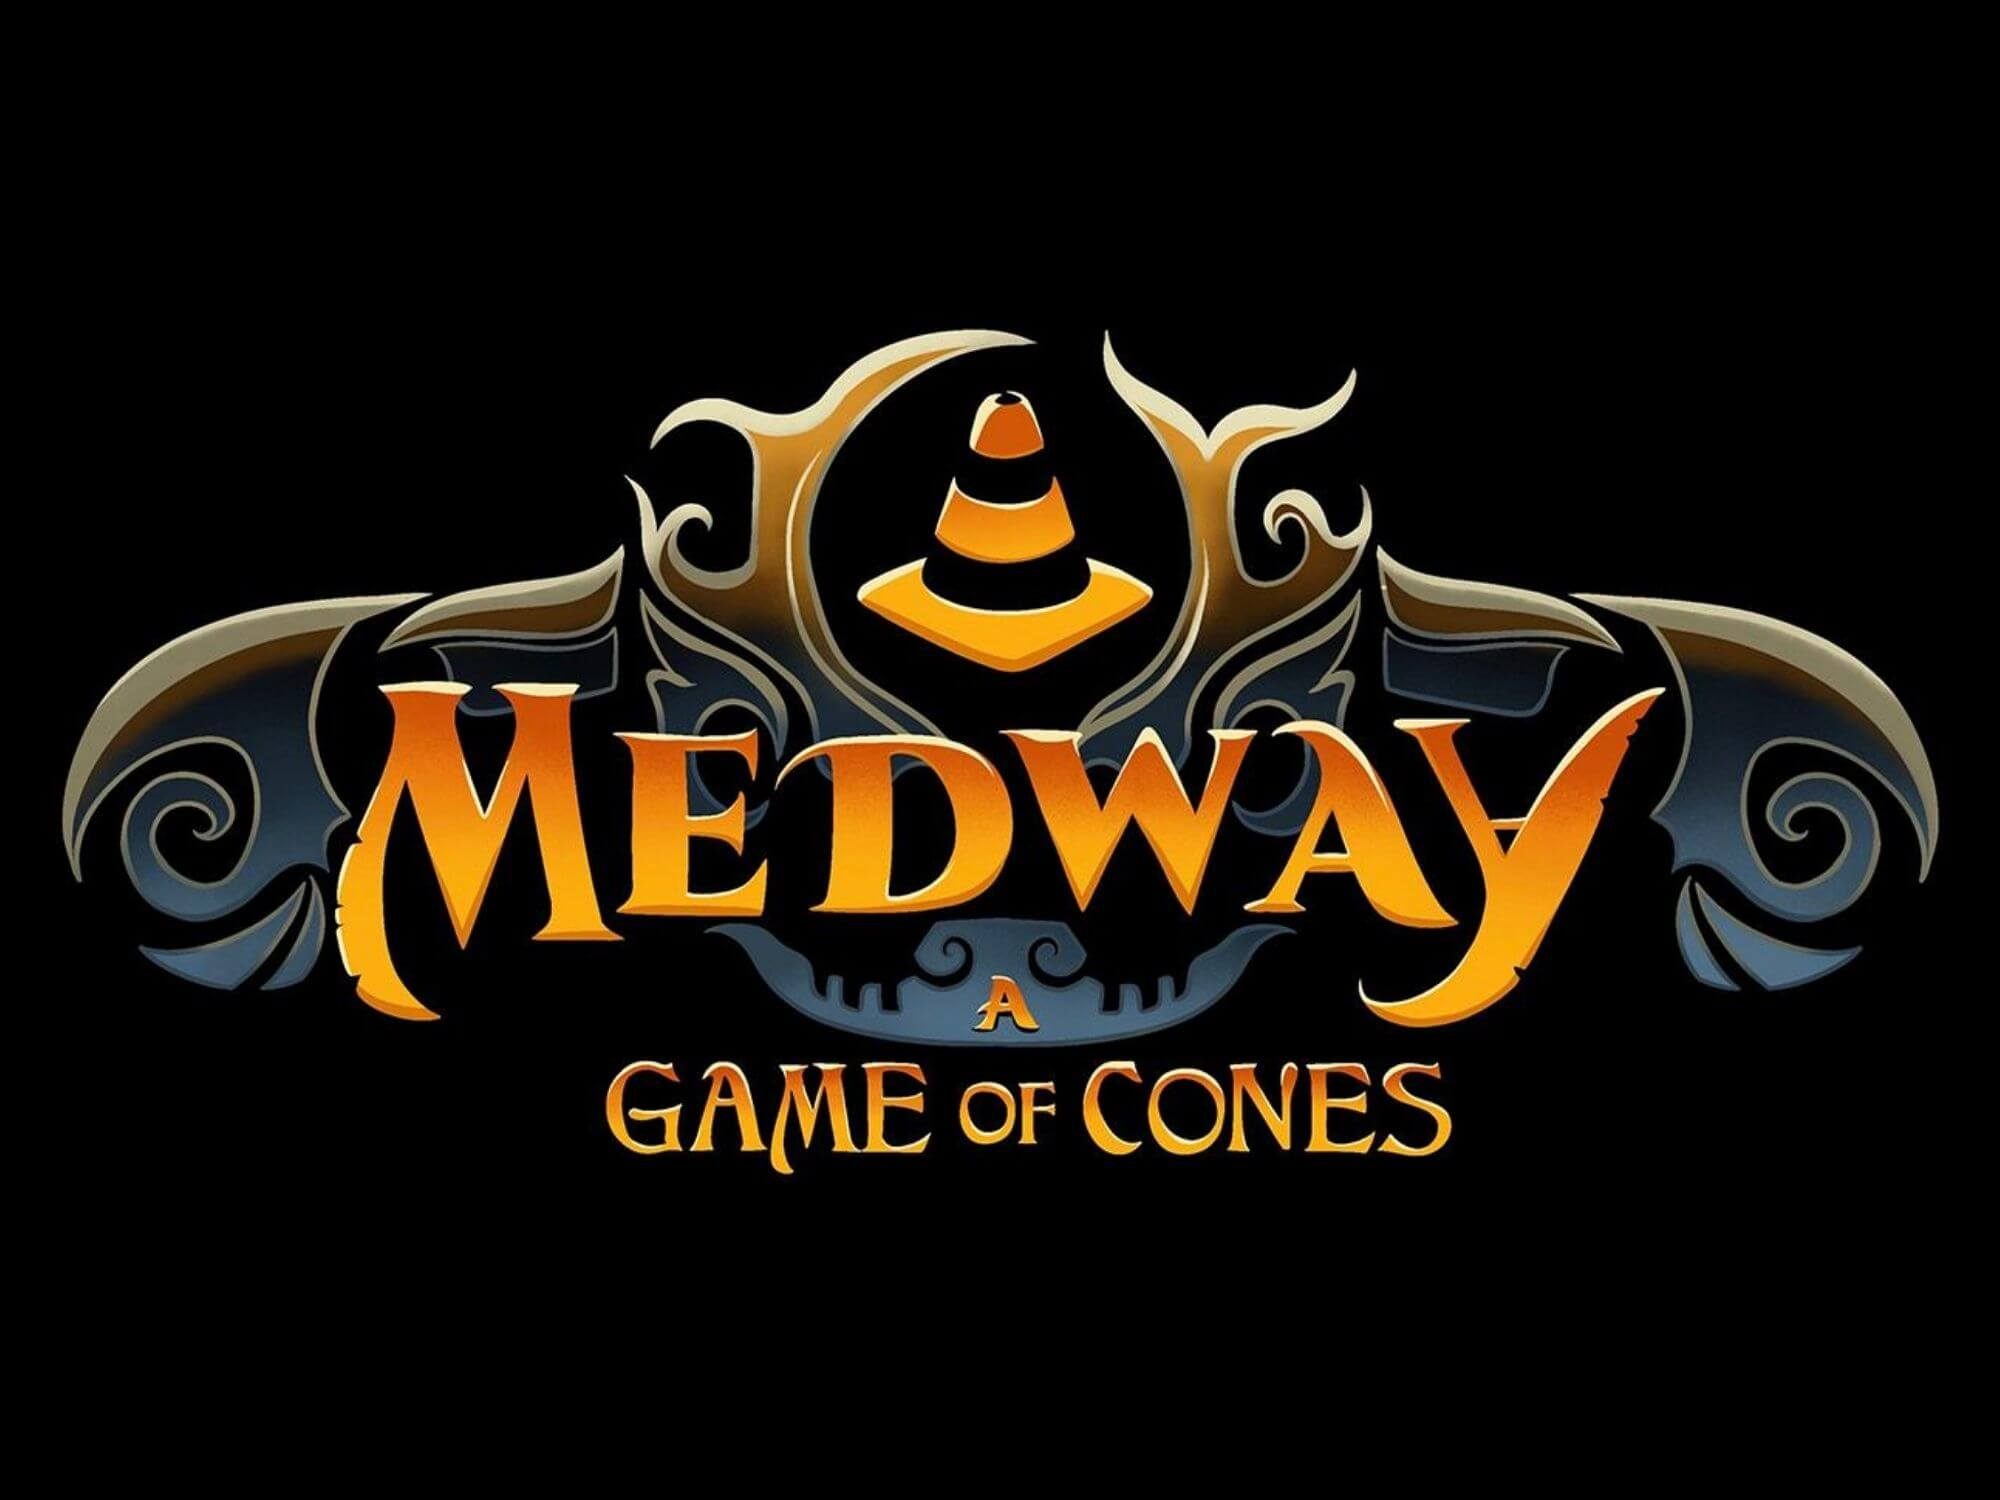 MEDWAY: A Game of Cones by Nick Ashton